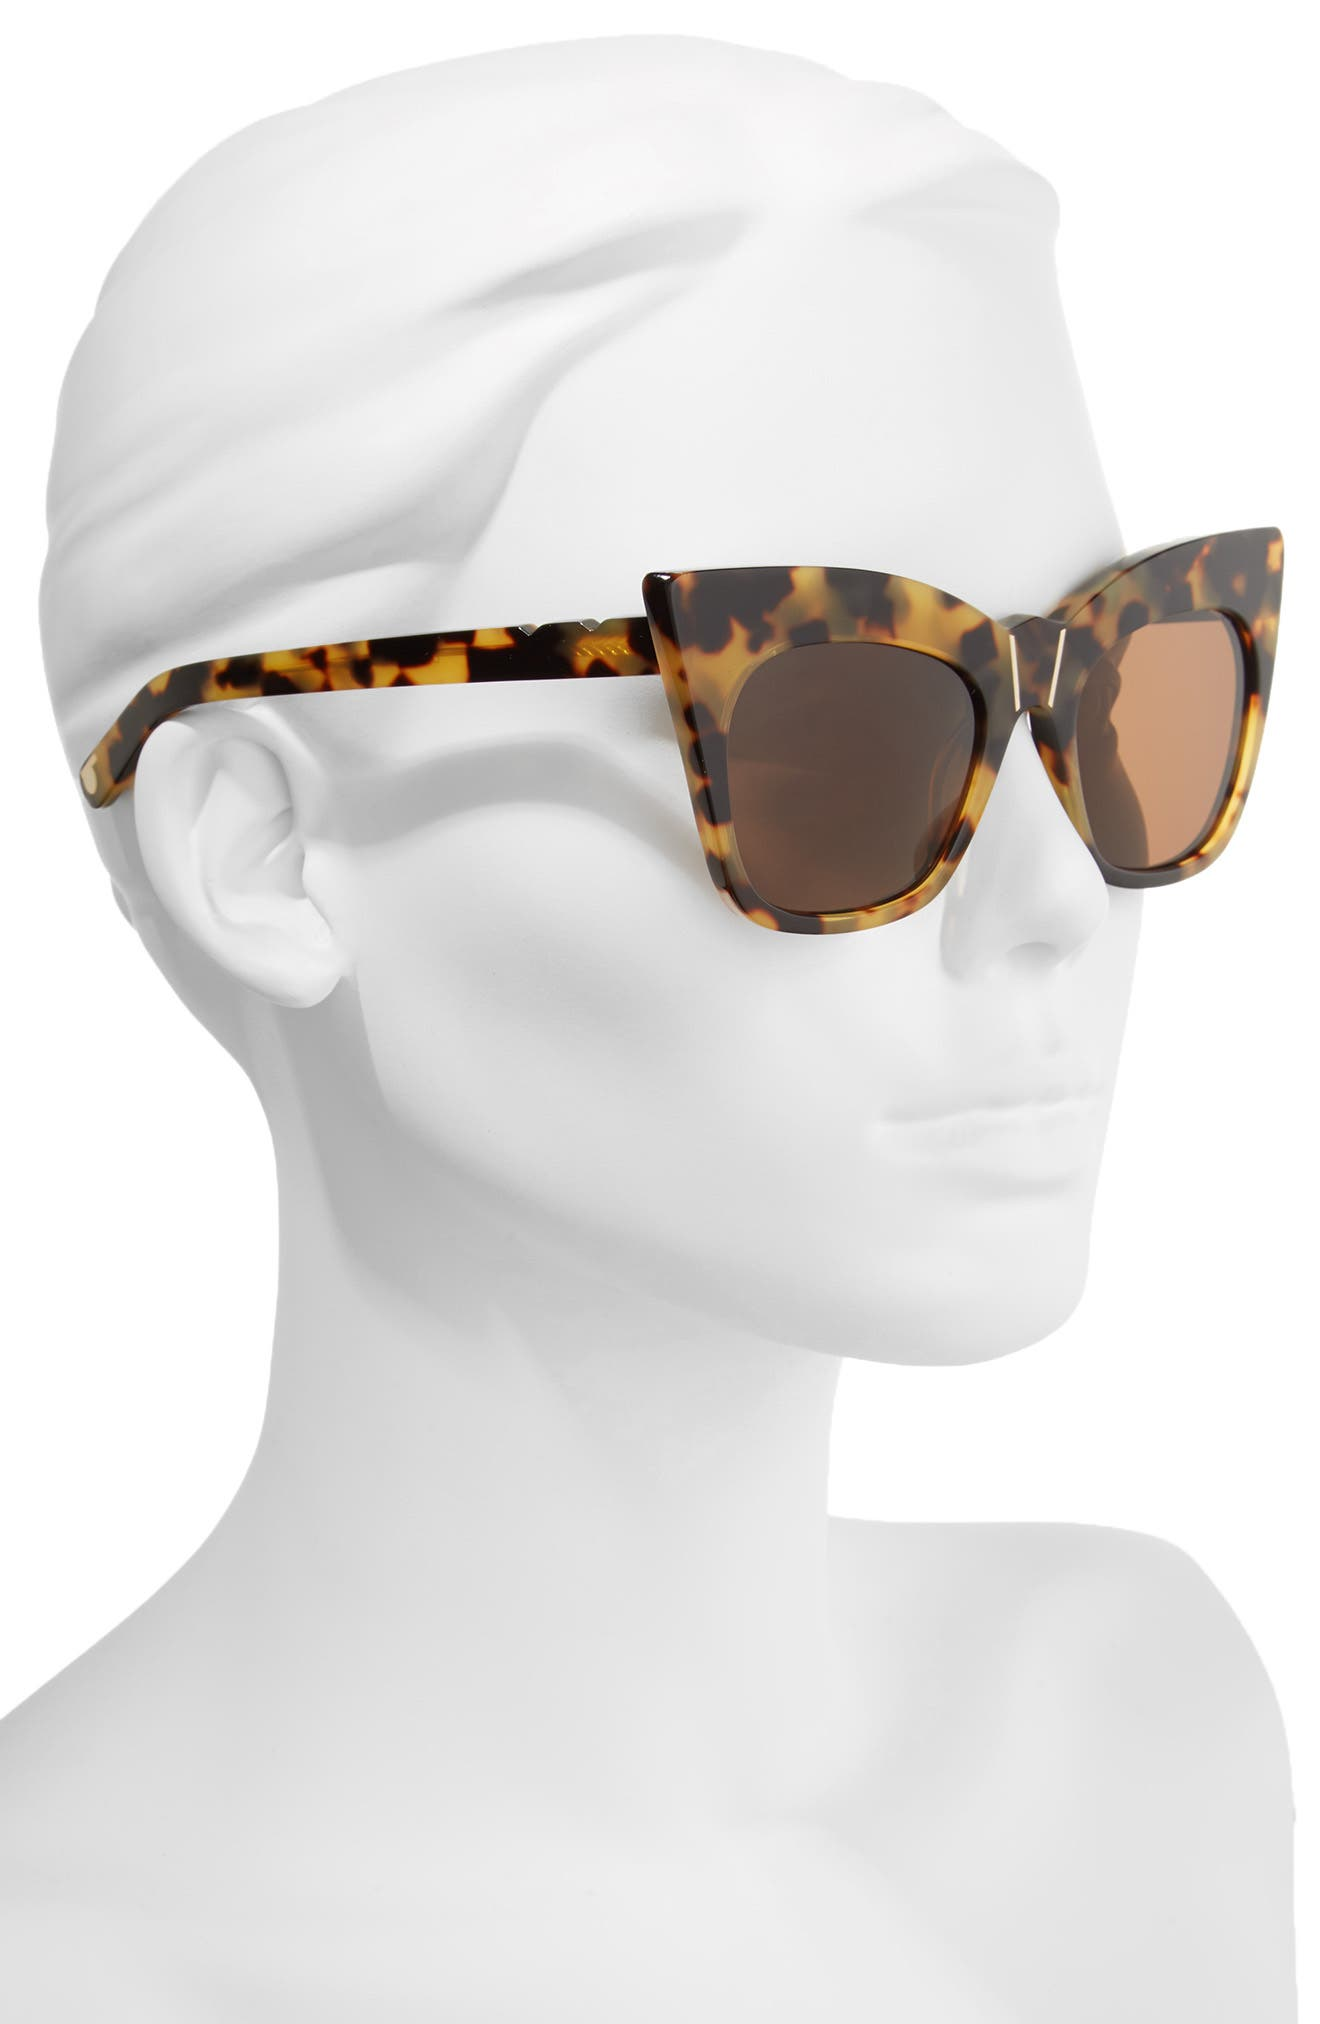 Kohl & Kaftans 52mm Cat Eye Sunglasses,                             Alternate thumbnail 3, color,                             Dark Tortoise/ Brown Gradient